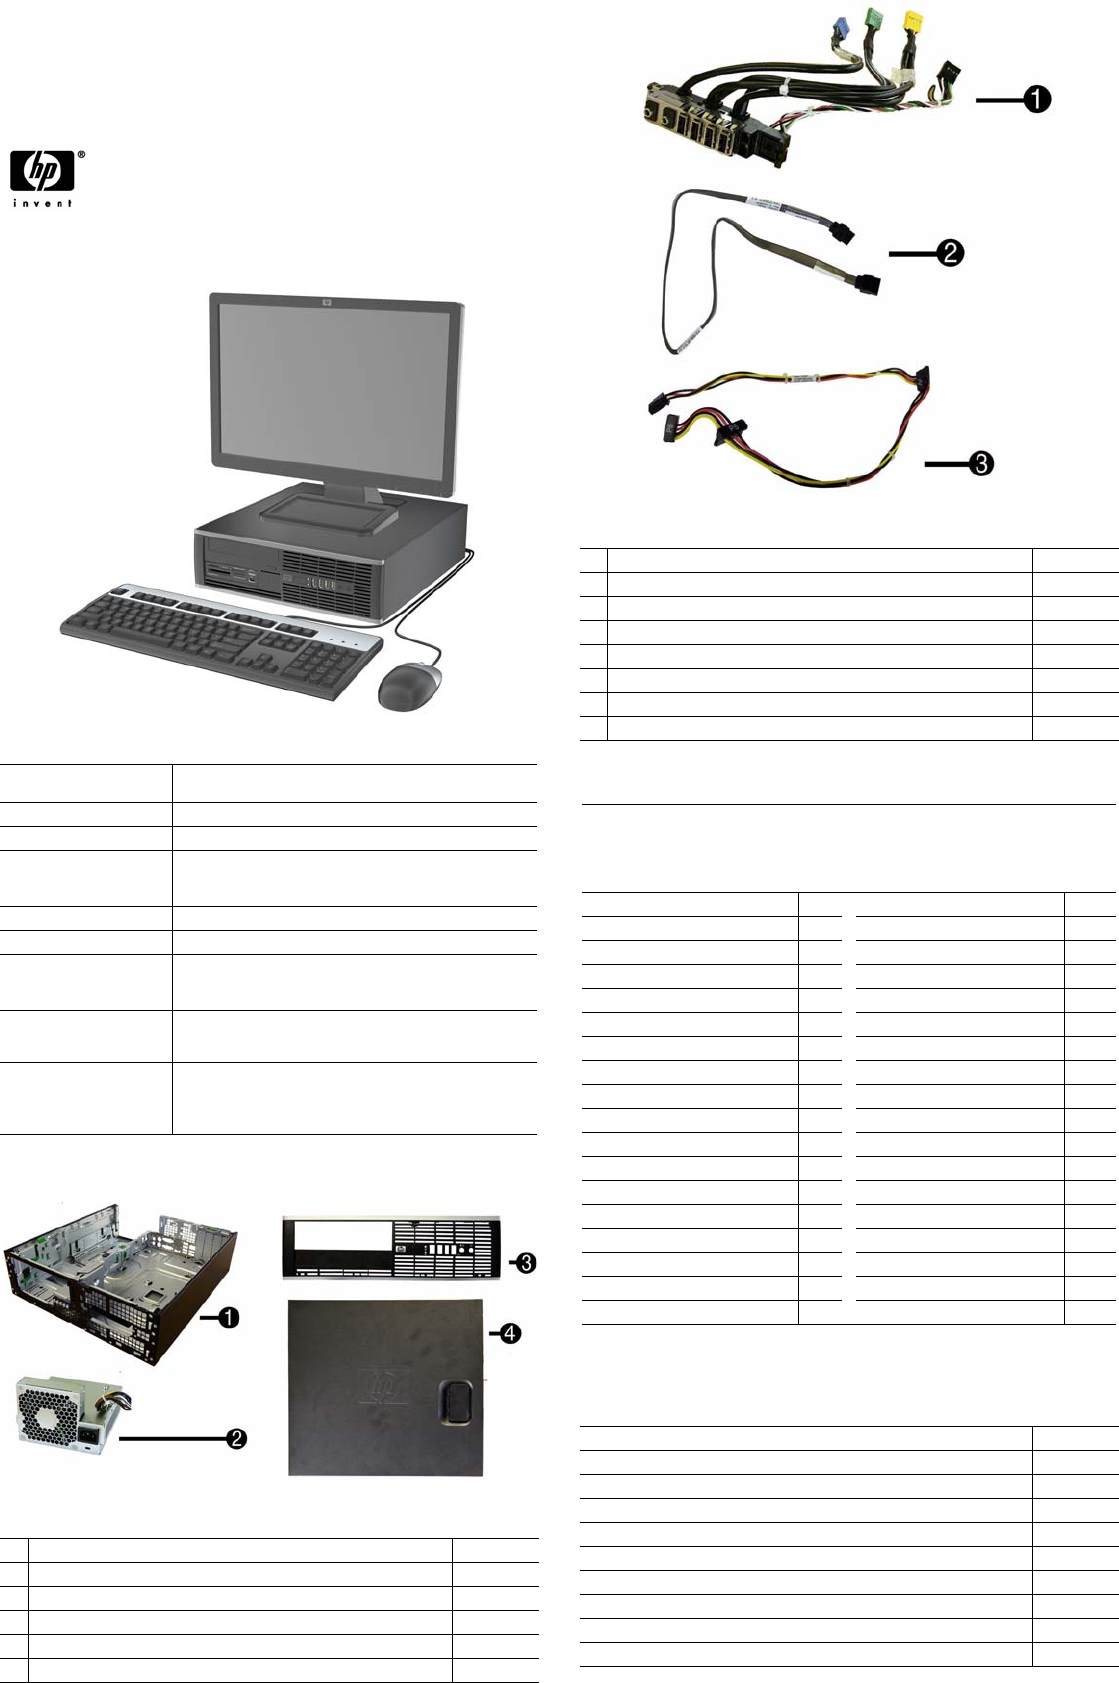 Hp Compaq 8000 Elite Small Form Factor Pc Service And